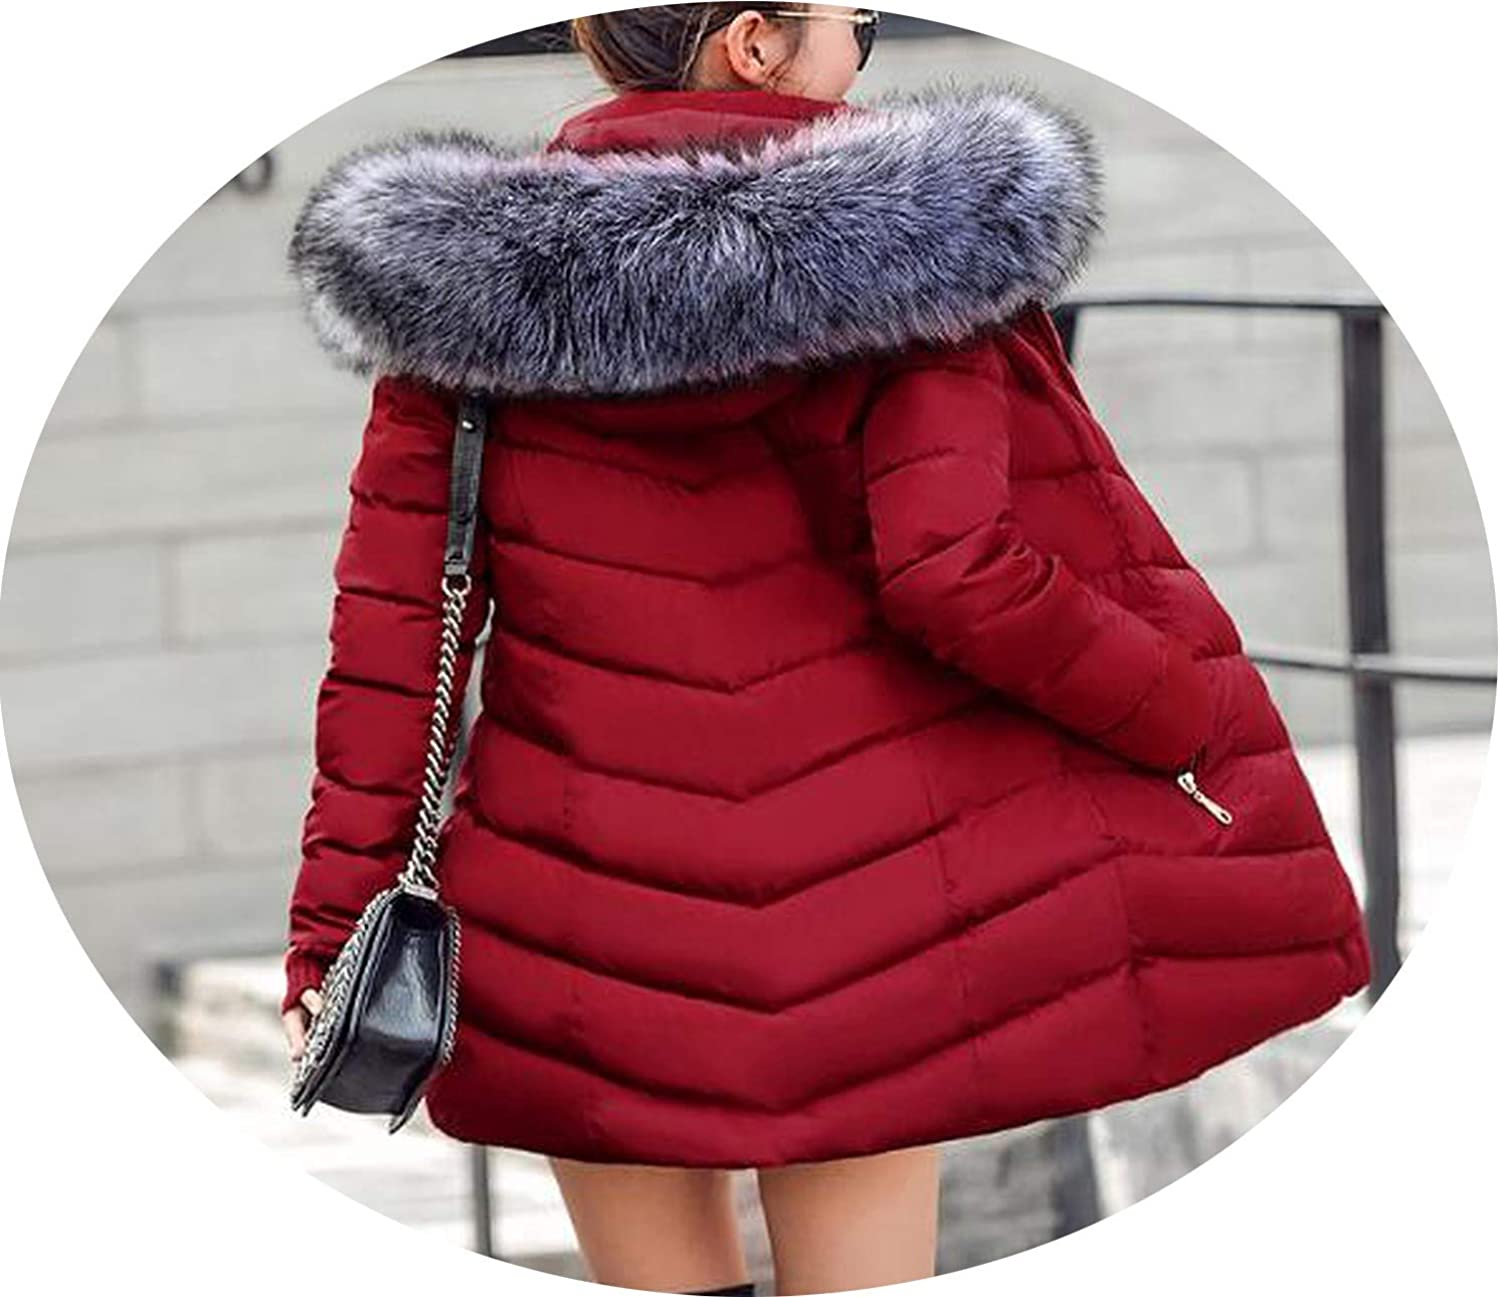 Black Winter Jacket Women Large Fur Outerwear Long Down CottonPadded Jacket Coat